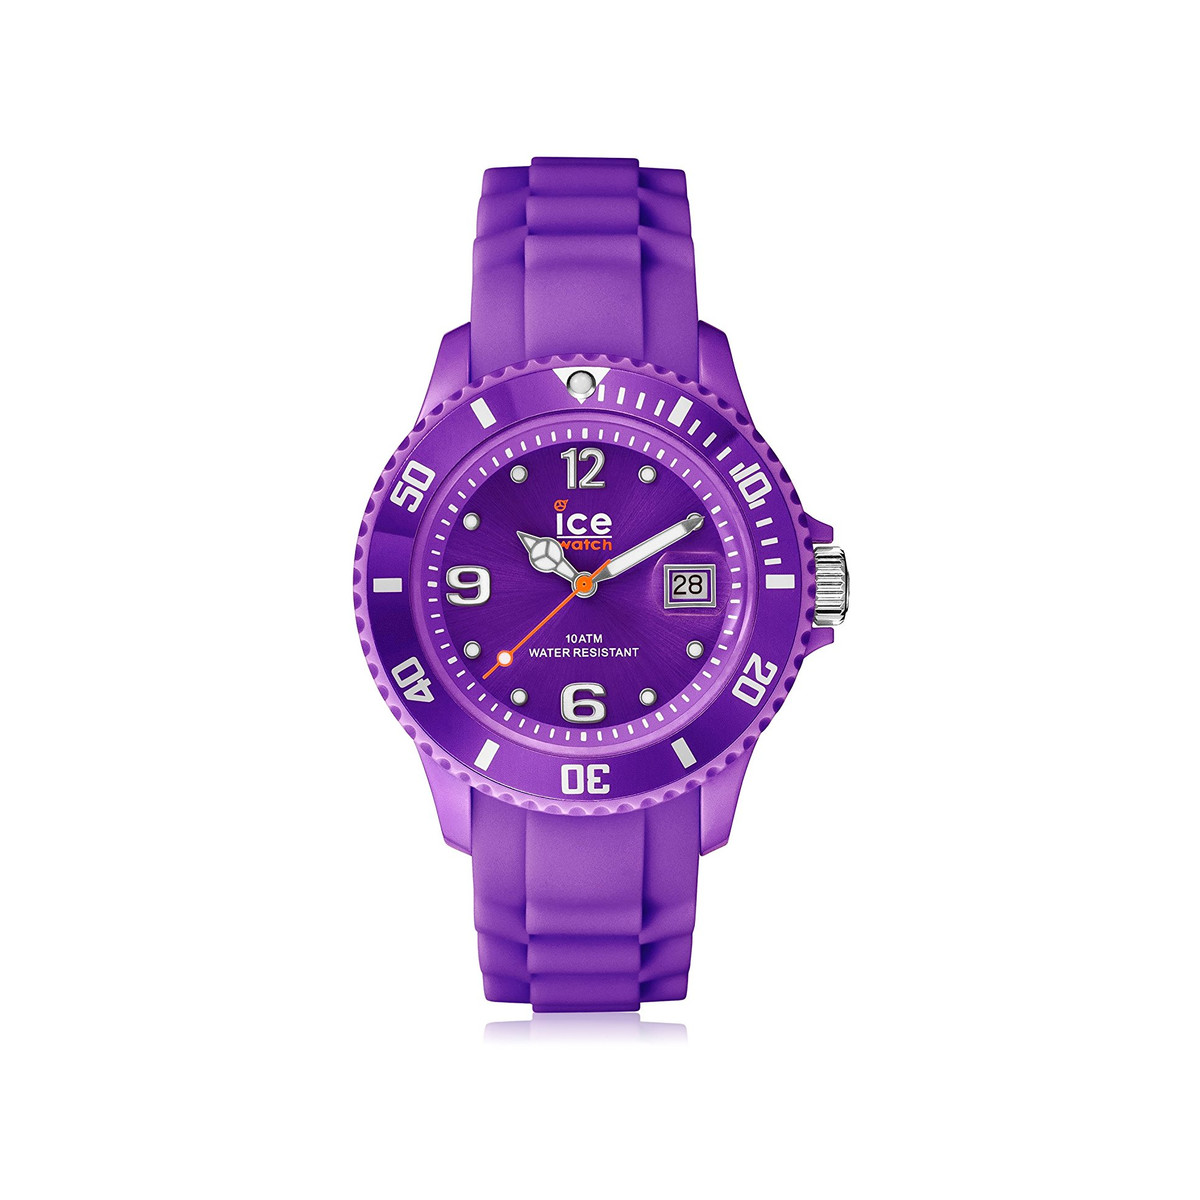 Montre Ice Watch mixte plastique silicone violet - vue 1